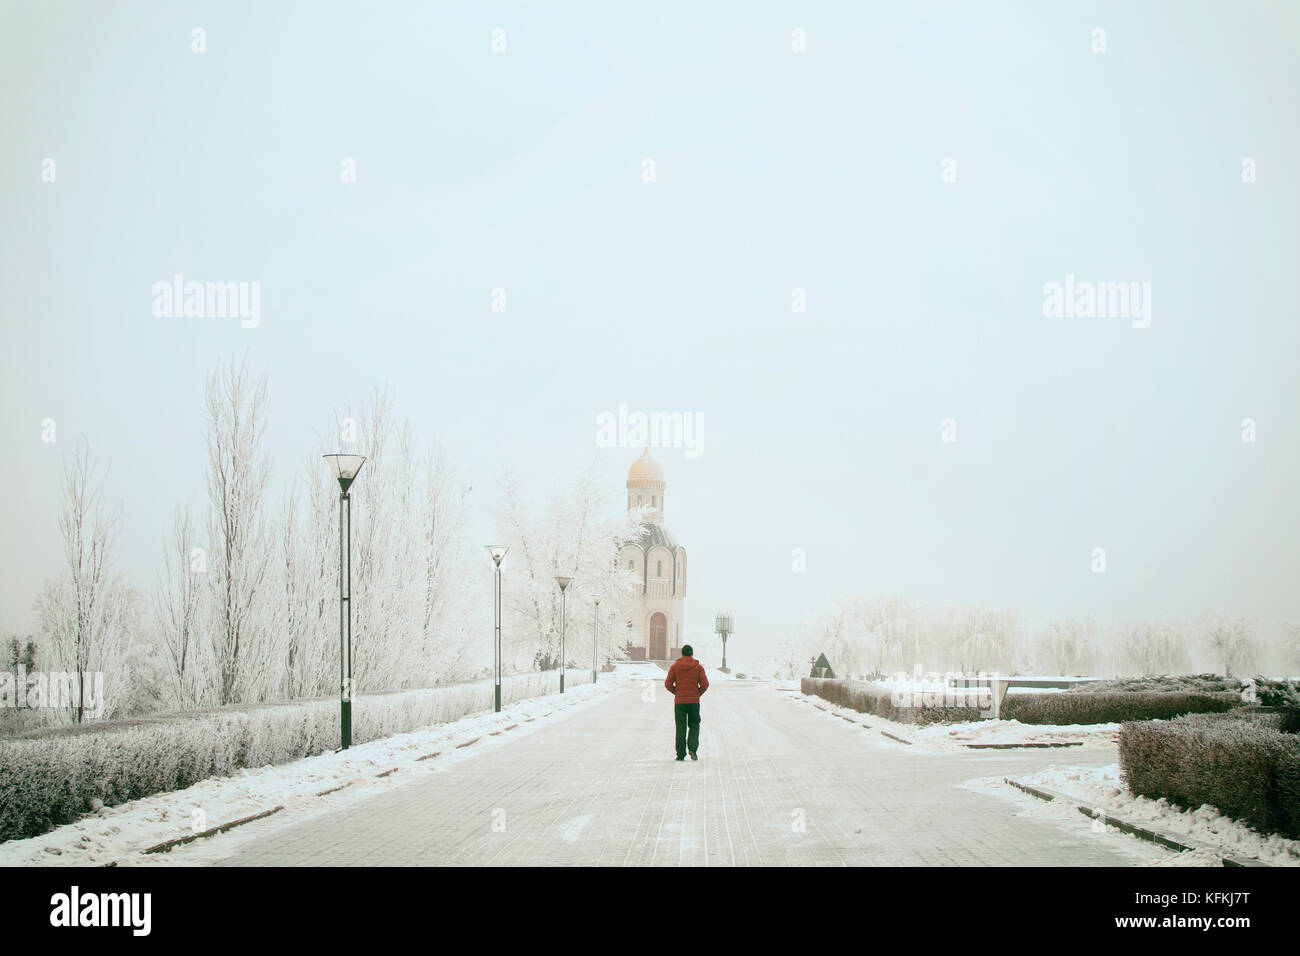 A passer-by on a winter snow-covered street - Stock Image